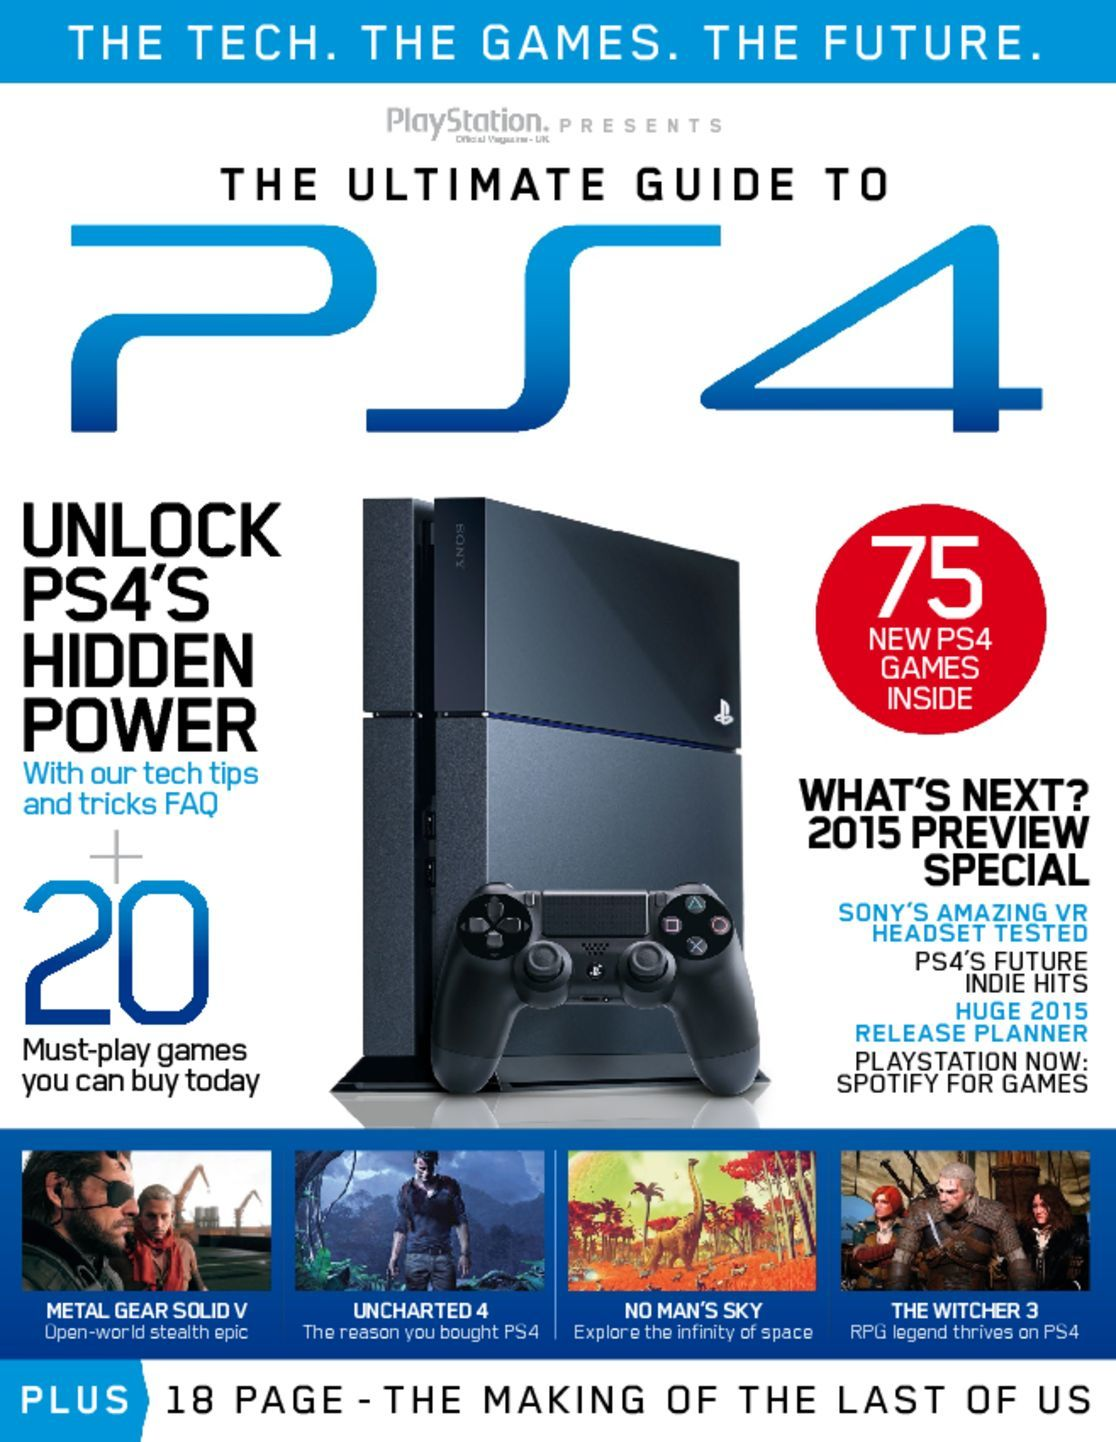 The Ultimate Guide to PS4 (Digital)